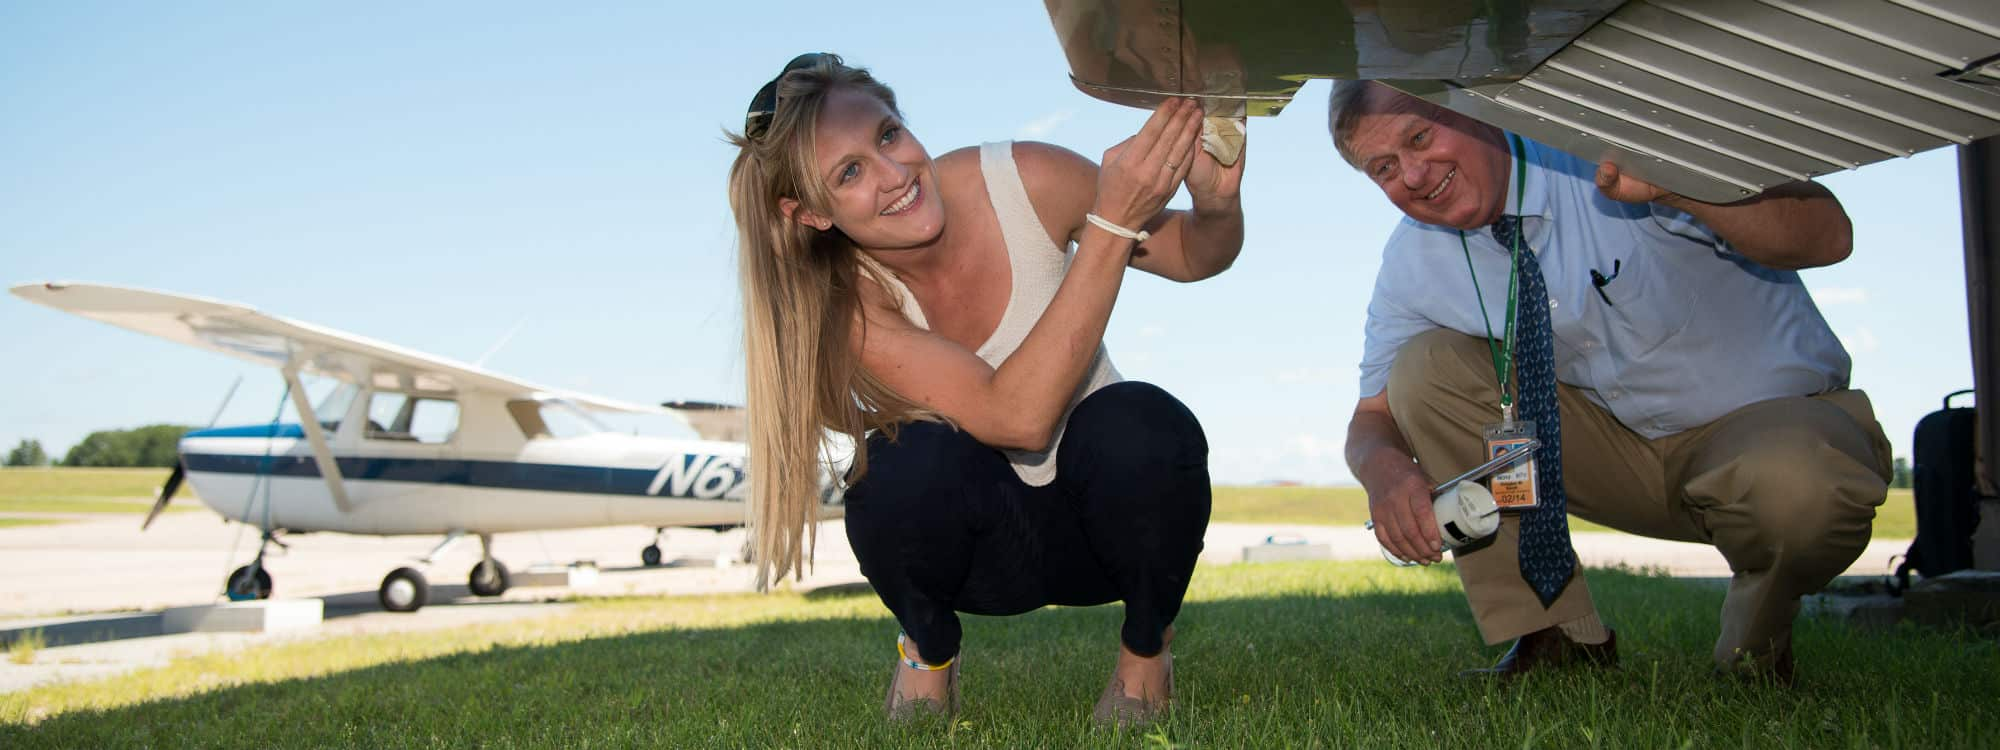 Jamie Heiam, Professional Pilot Technology student, inspects a plane with her instructor on the Williston Campus